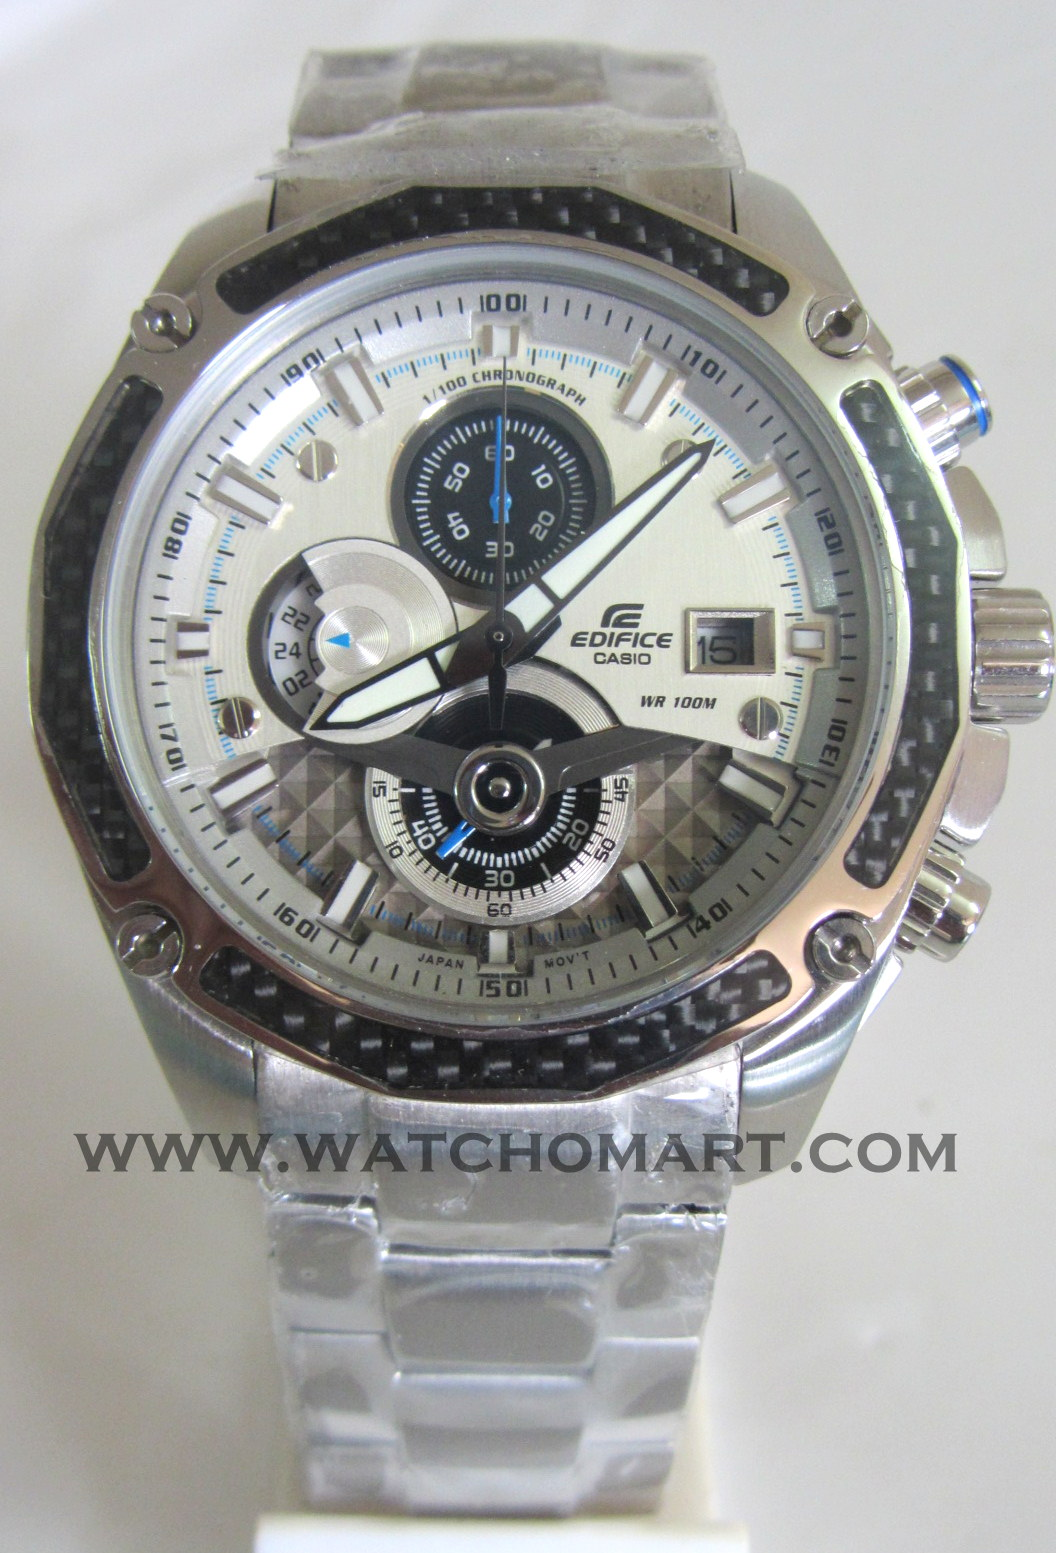 Want Casio Edifice Watches Wholesale We Have All Models Available Efr 540d 1av